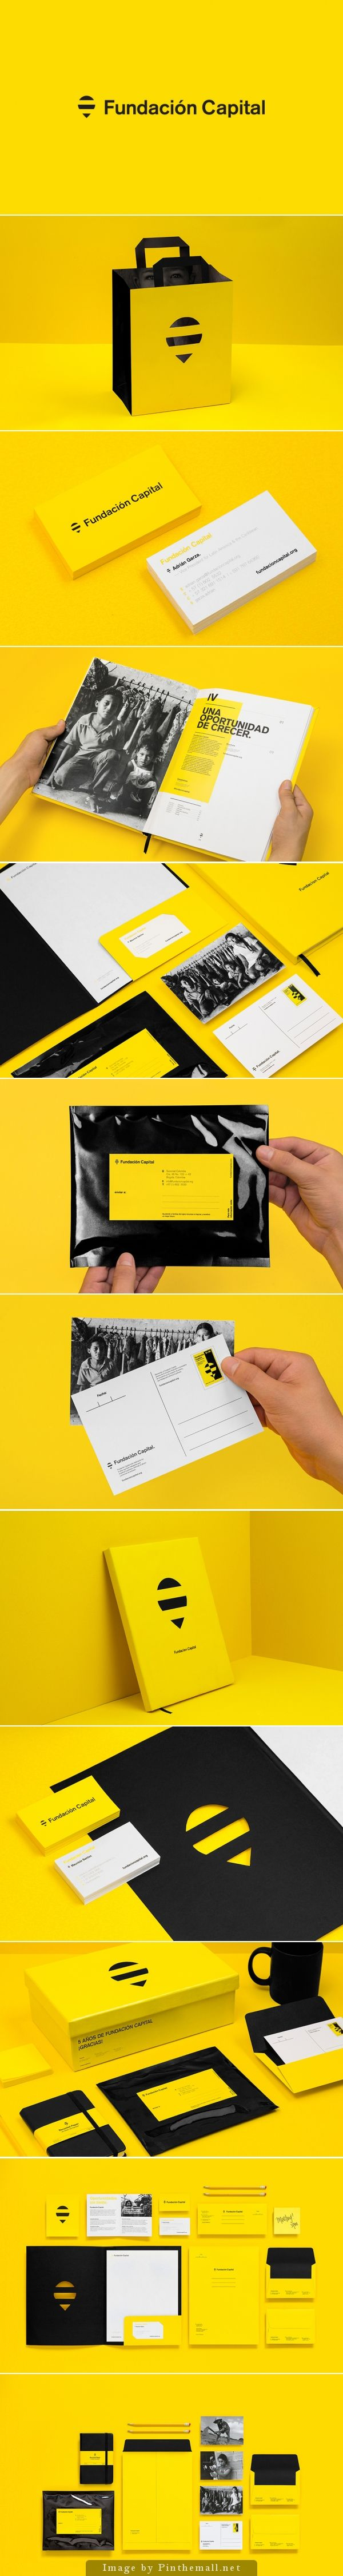 Corporate identity branding stationary yellow black enveloppe business card letterhead cover shopping bag logo postcard brochure graphic design